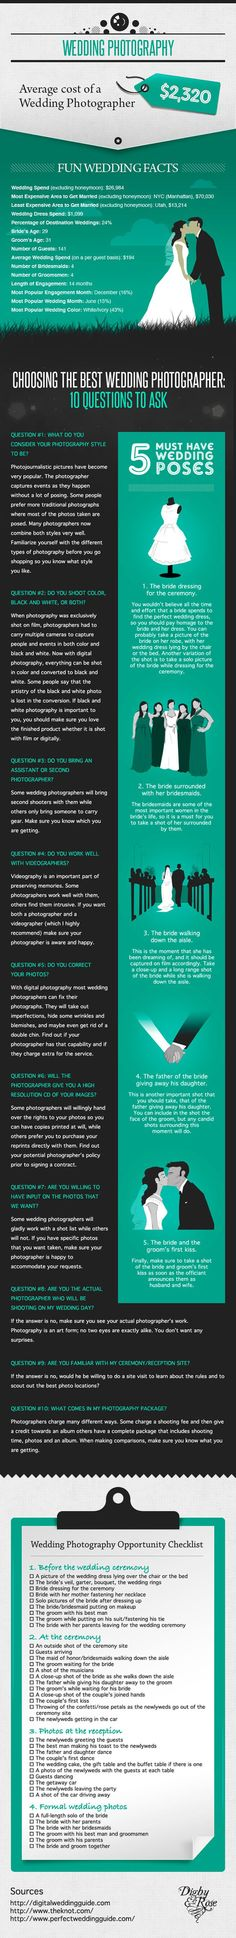 Wedding Photography Tips: Using Flash in Low Light Church Wedding   Wedding Photography Design